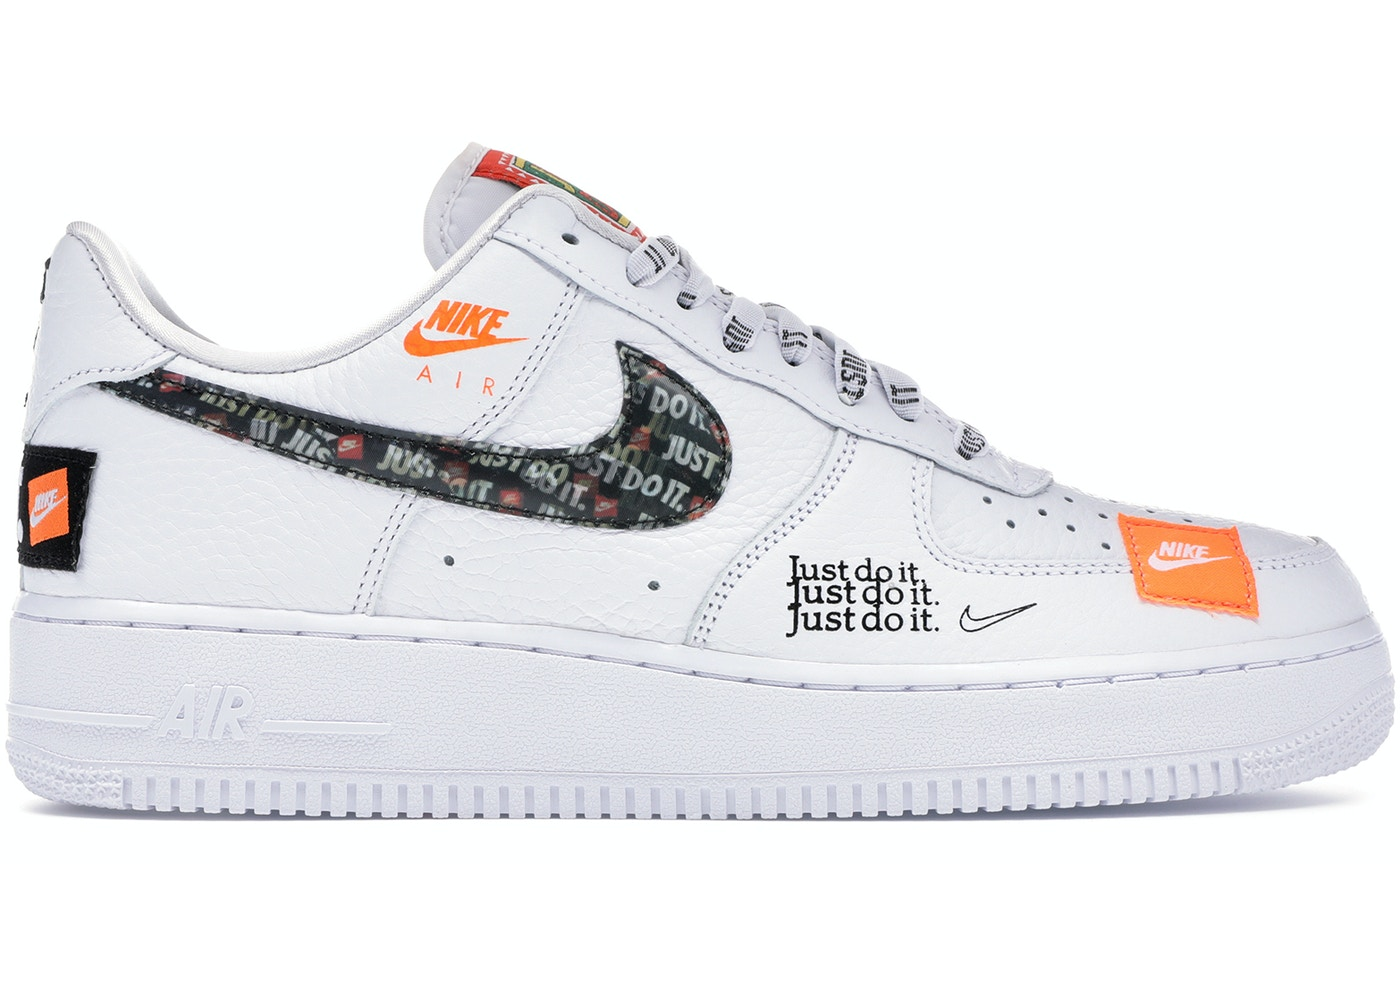 uk availability 59f44 b12cf Air Force 1 Low Just Do It Pack White/Black - AR7719-100